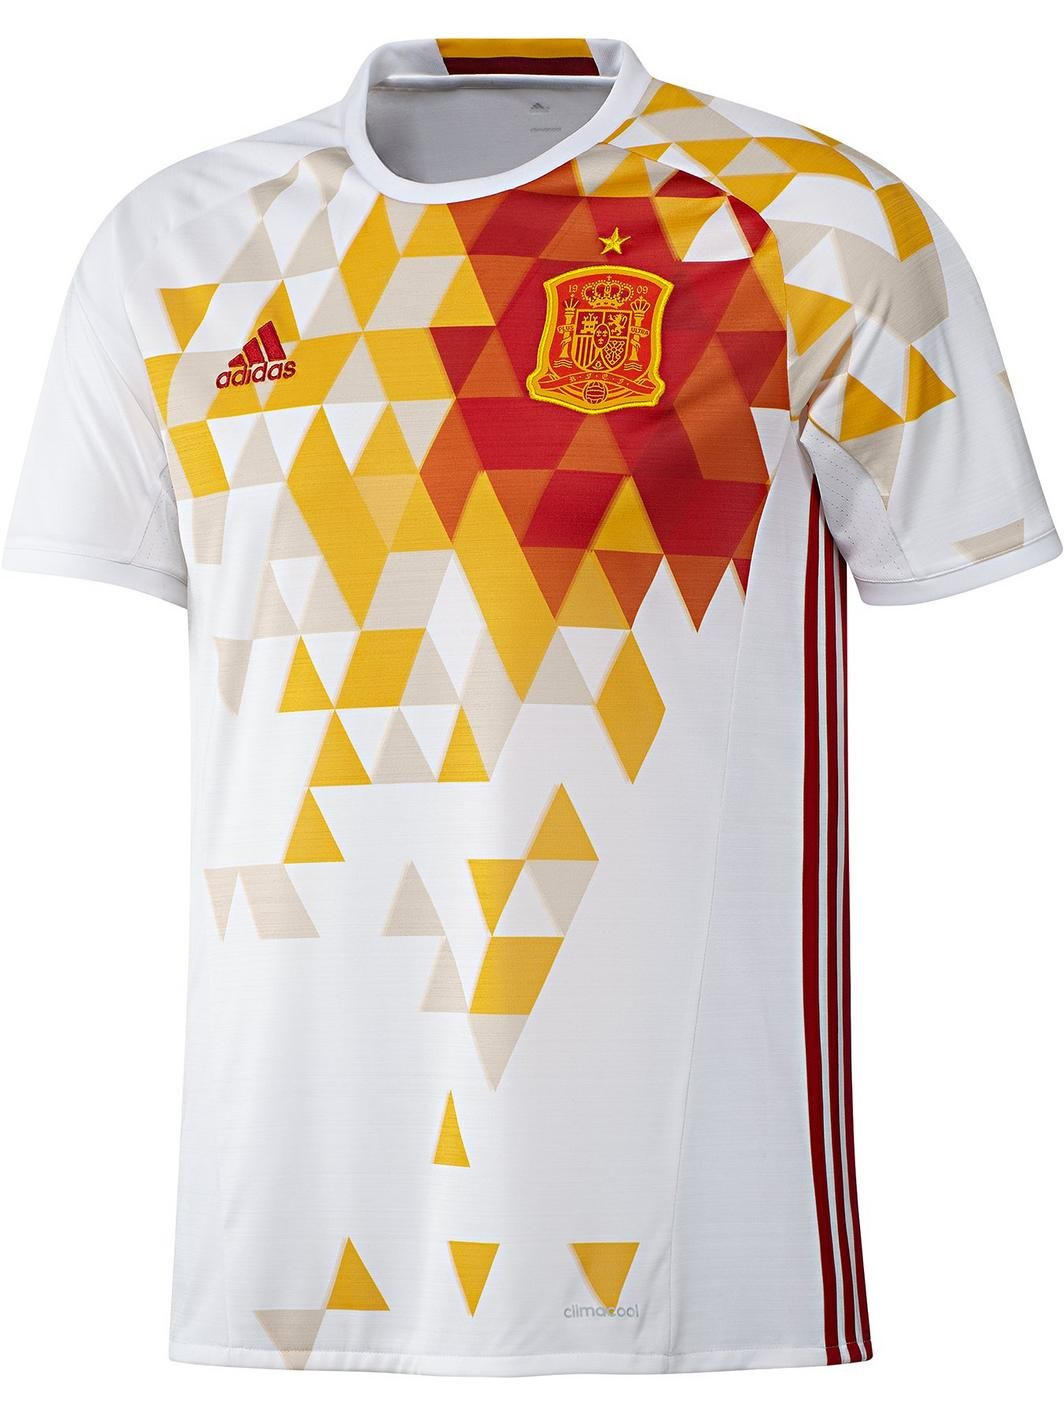 43dfcea8a84 Spain Away Adidas Football Shirt. If you love soccer